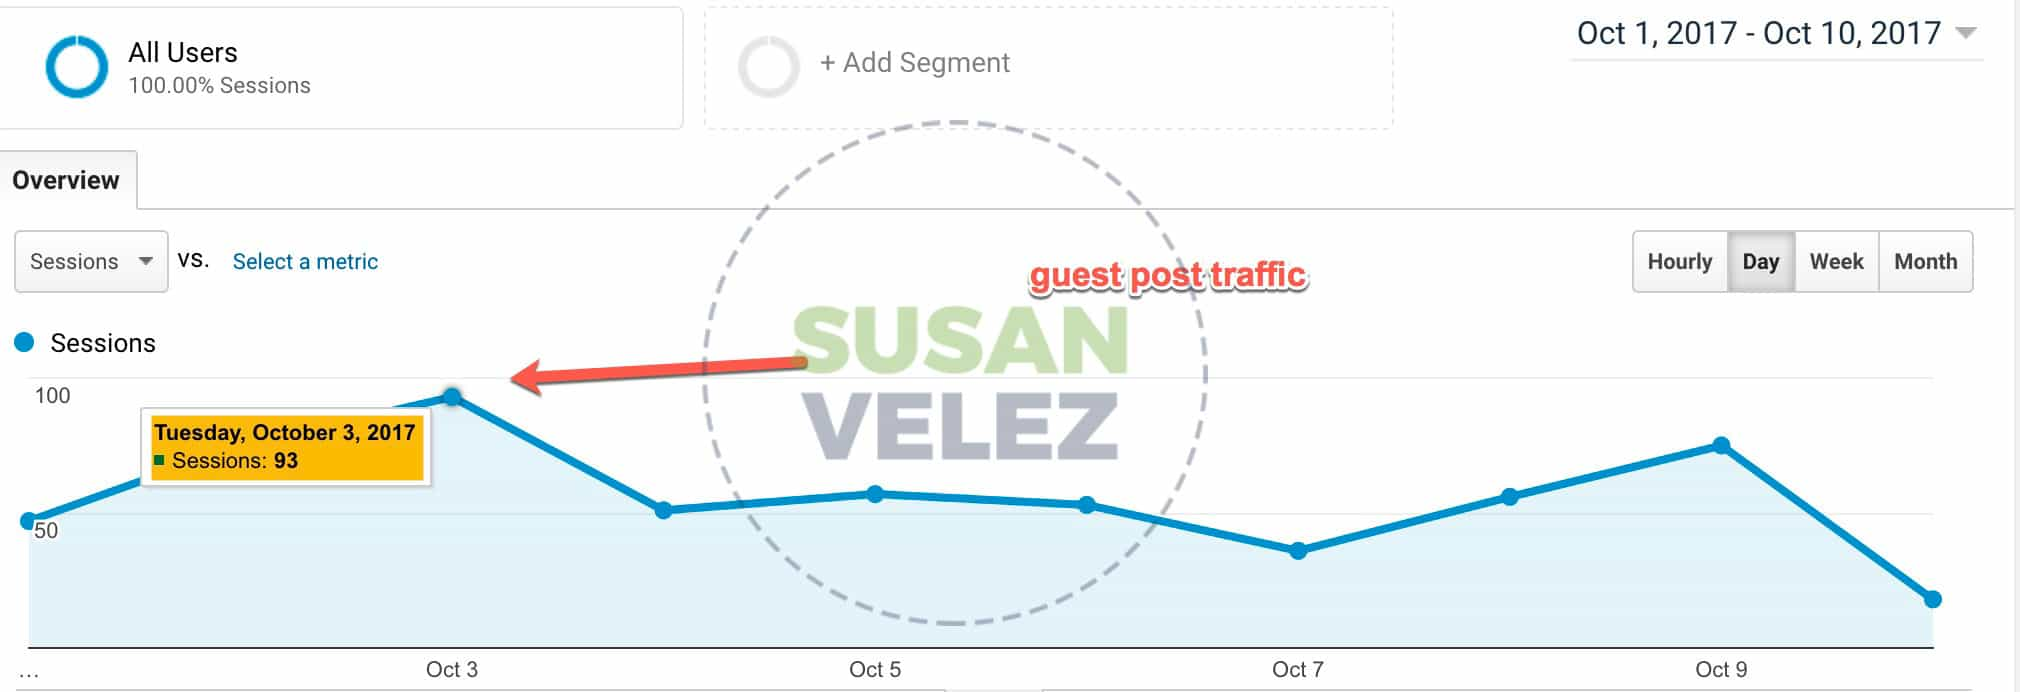 guest post traffic